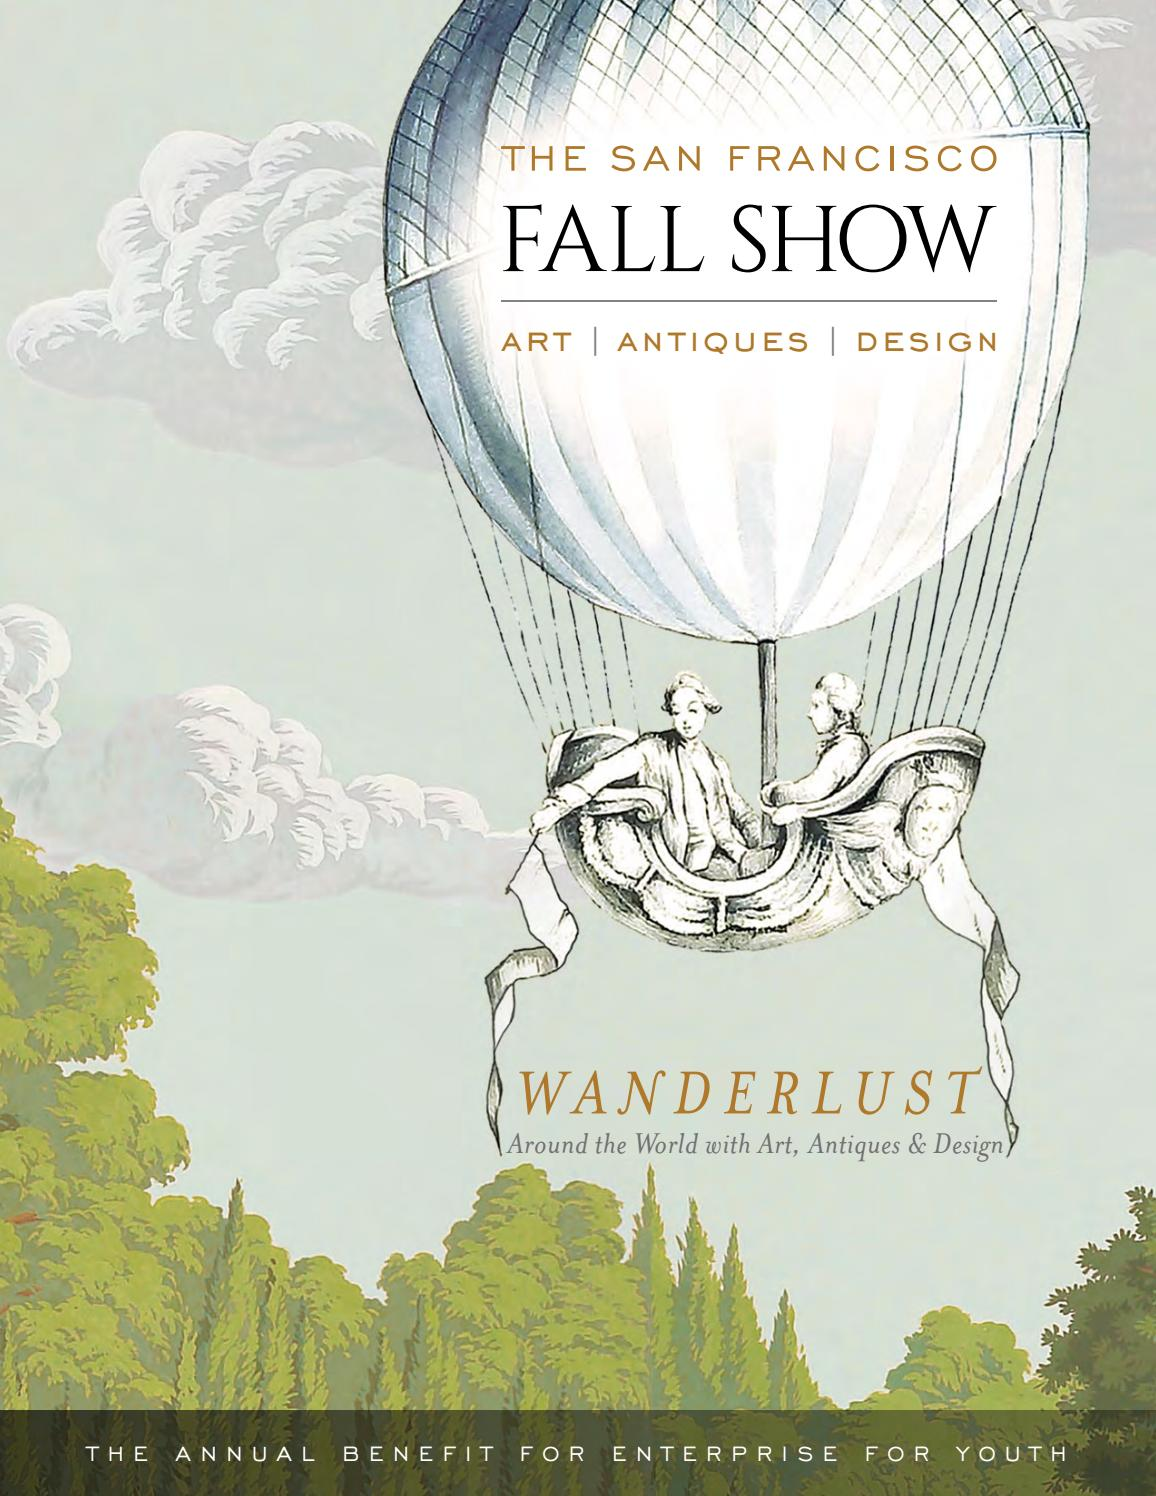 The 2019 San Francisco Fall Show Catalogue Art Antiques Design By The San Francisco Fall Show Issuu